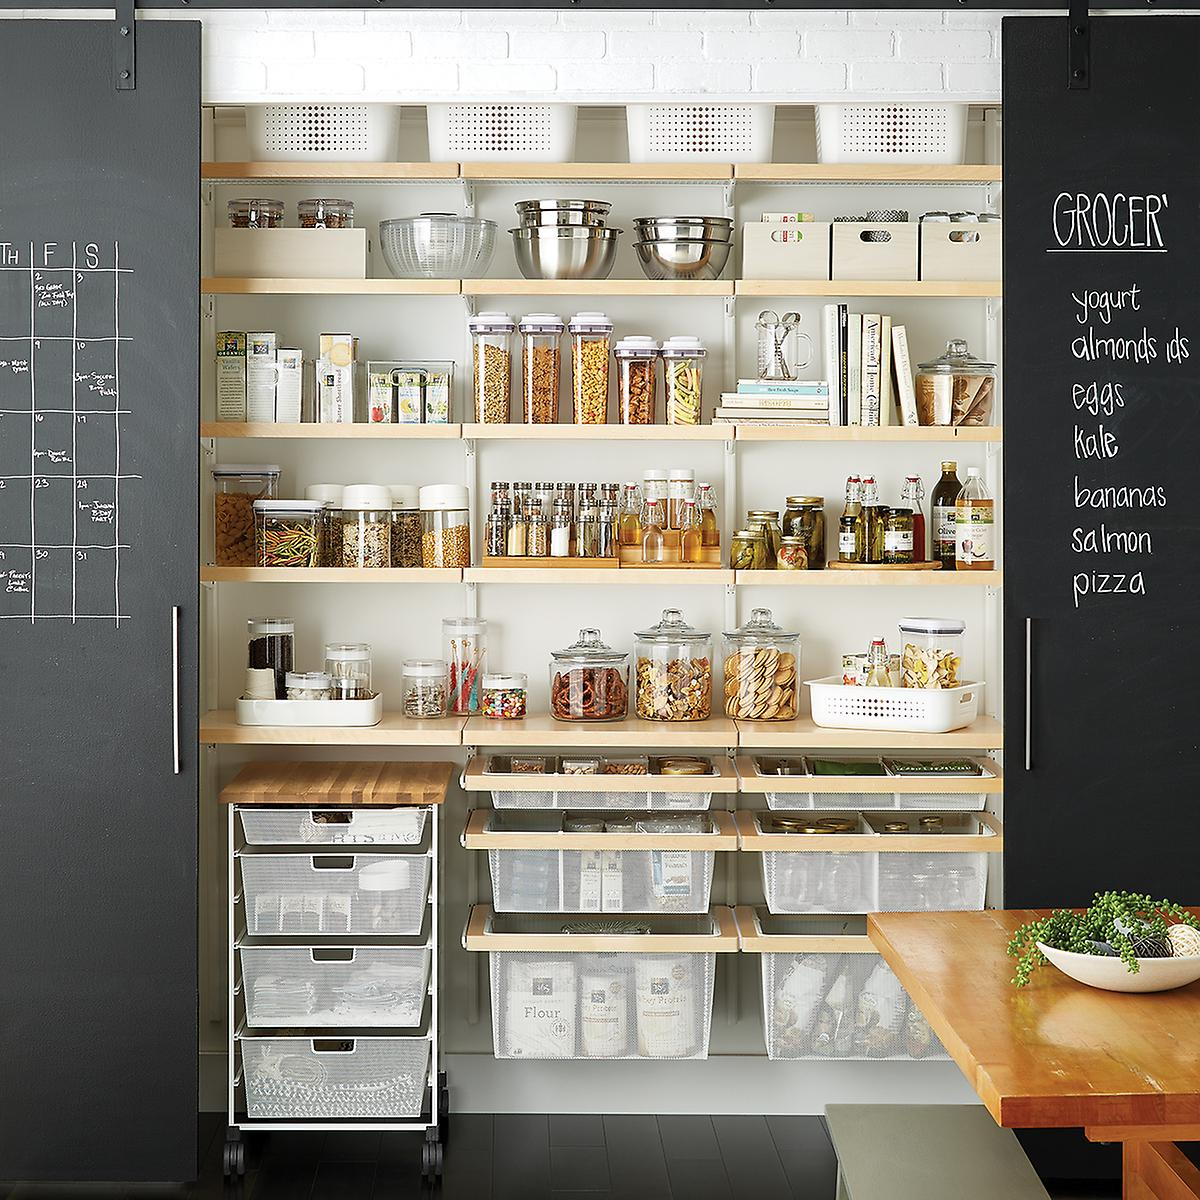 image via  The Container Store